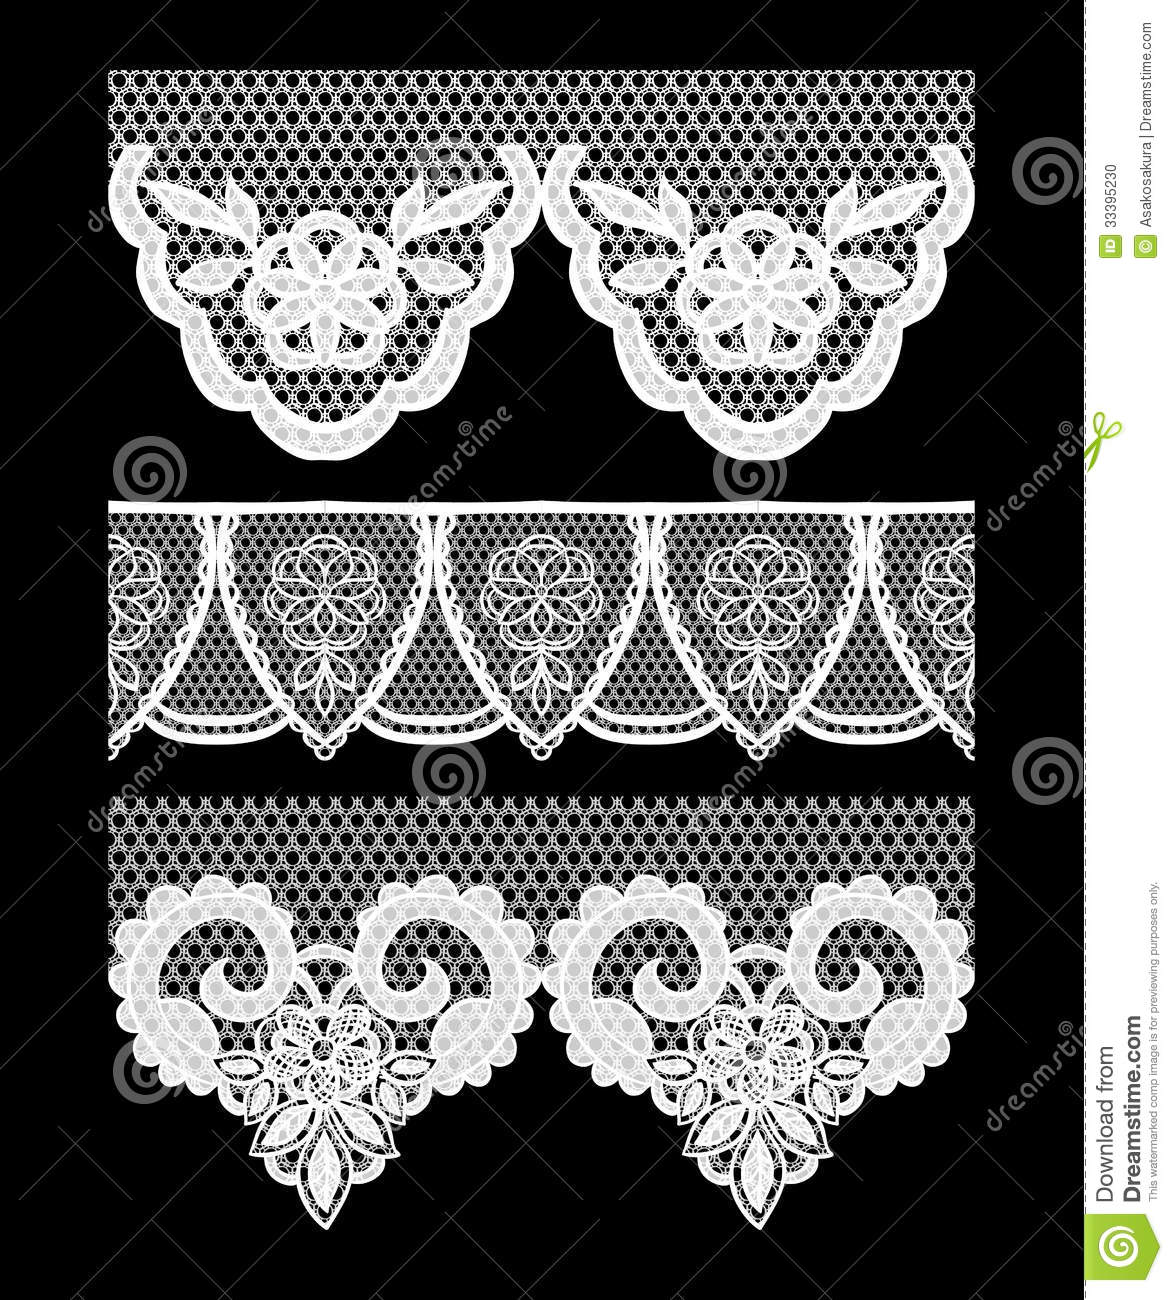 Lace seamless borders set of elements for design stock for Border lace glam